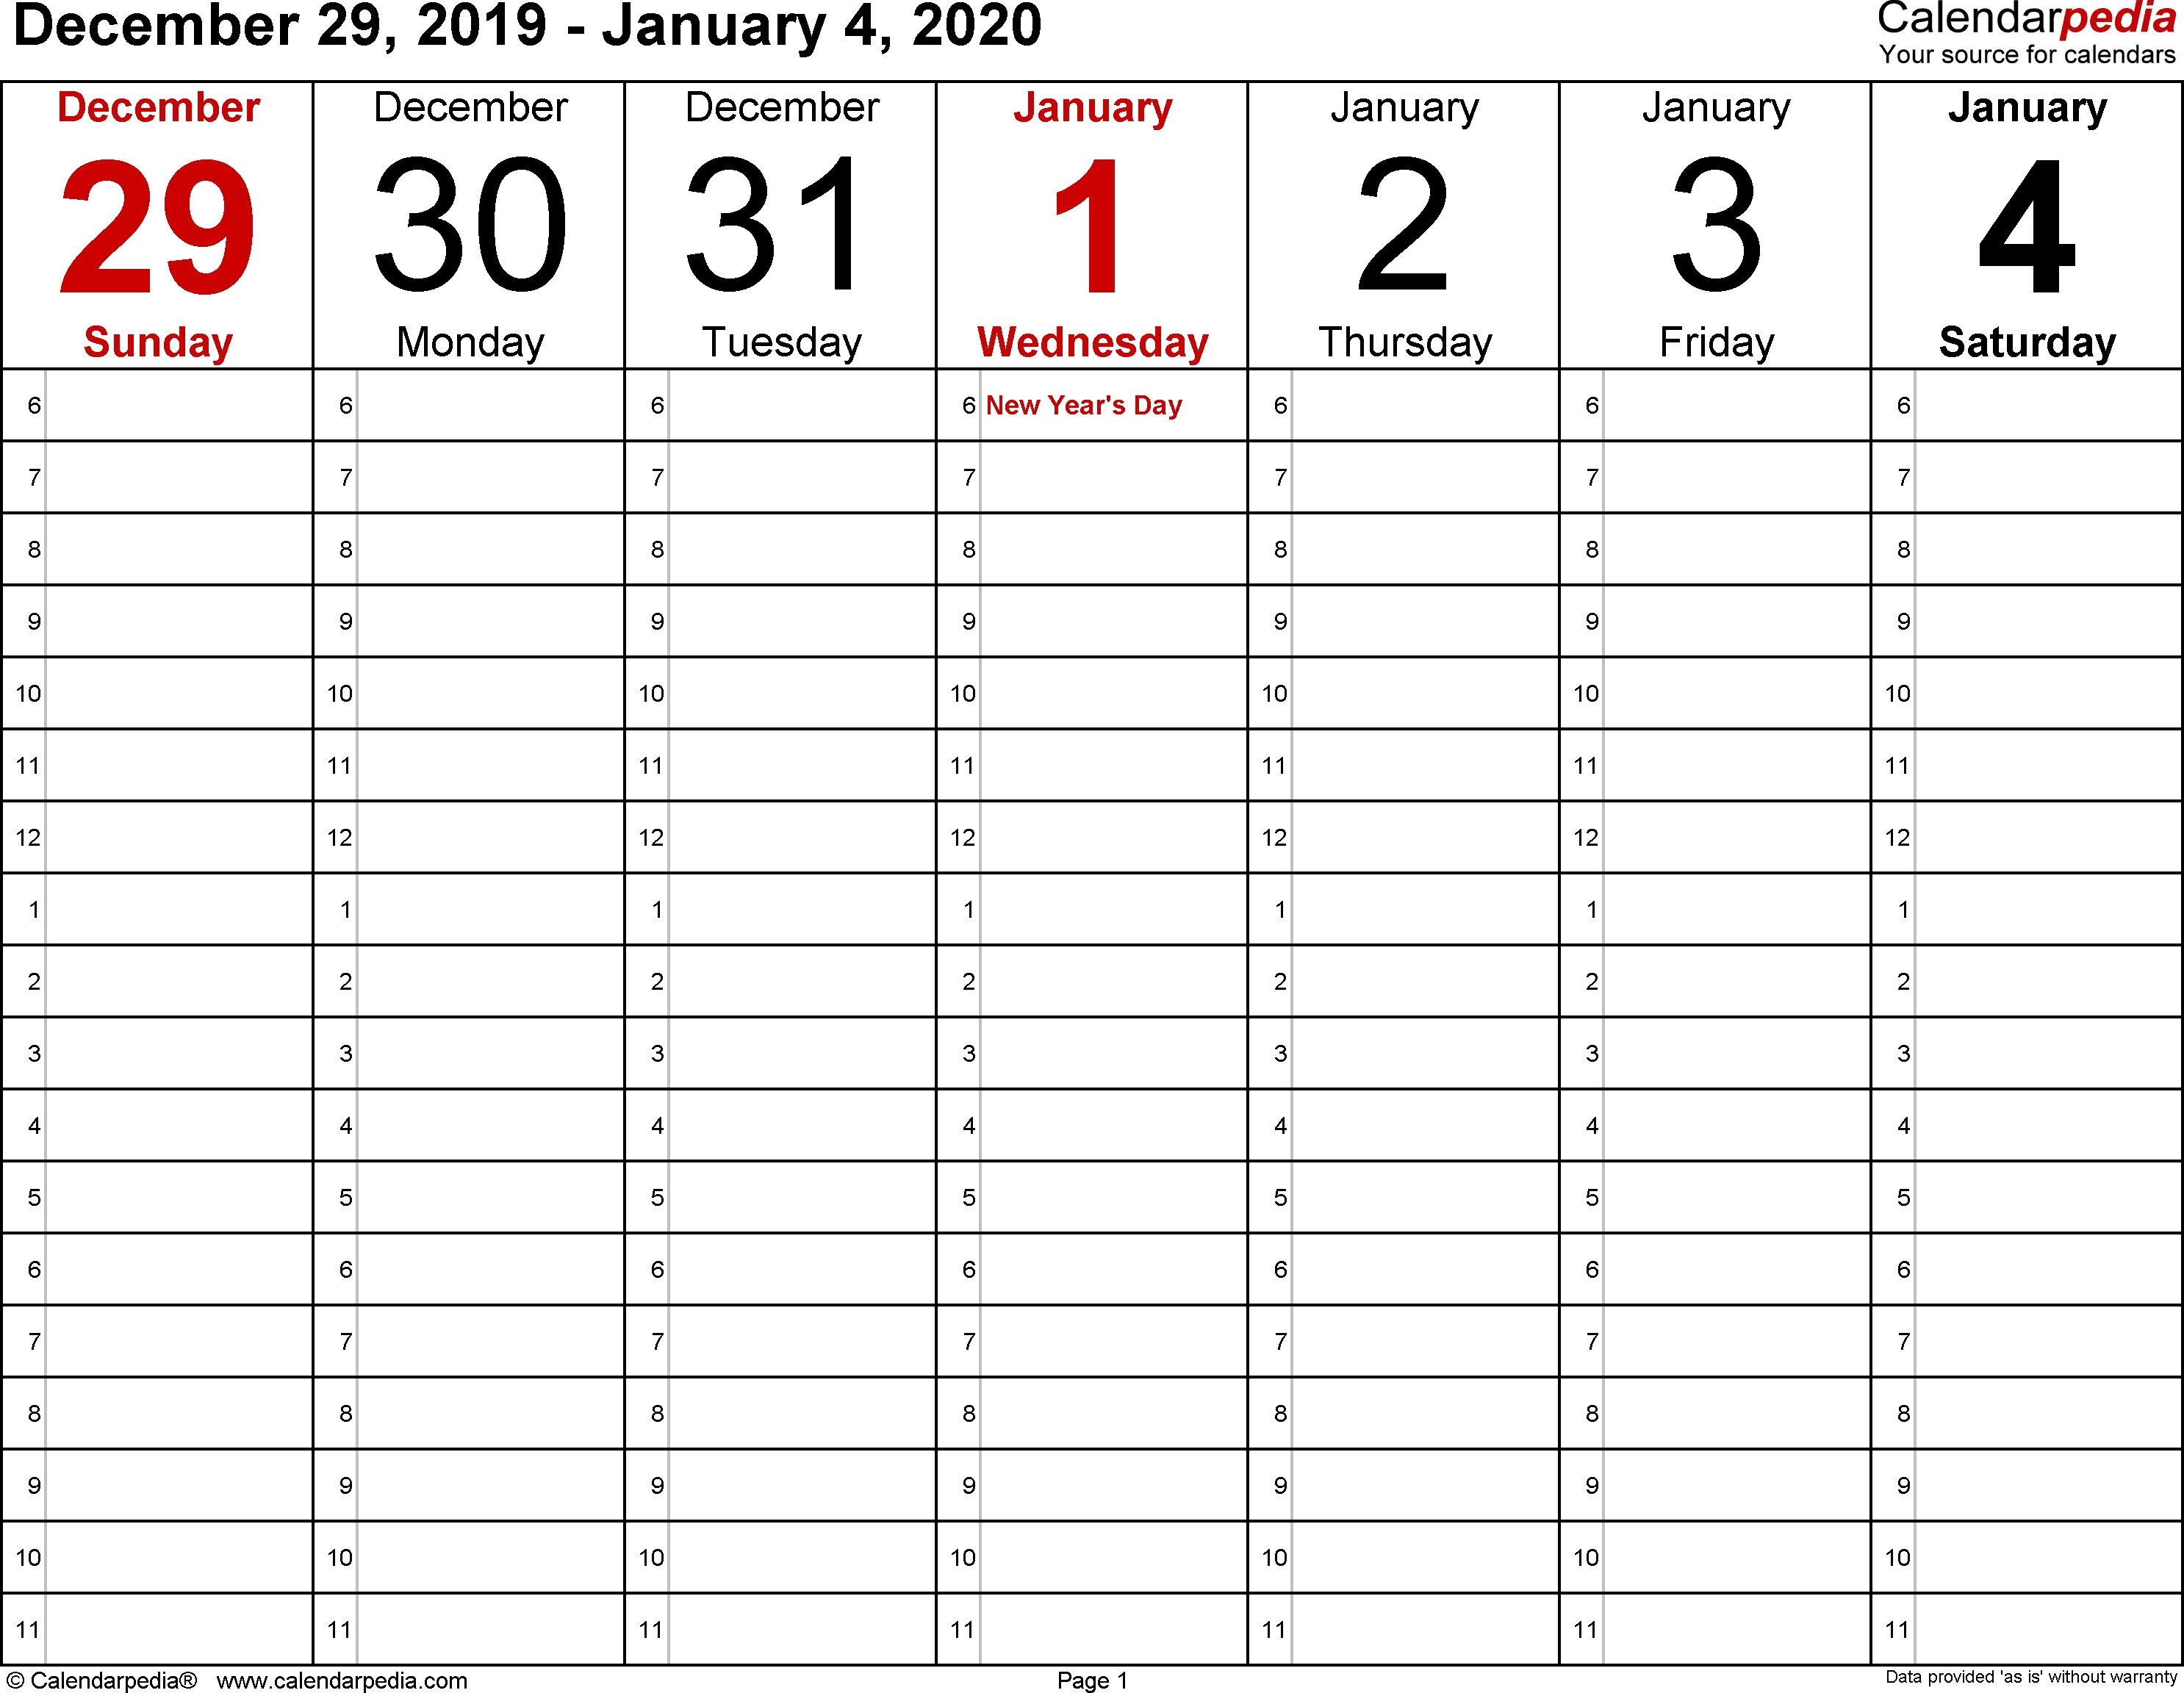 Weekly Calendar 2020 For Word - 12 Free Printable Templates in 2020 Fill In Calendar